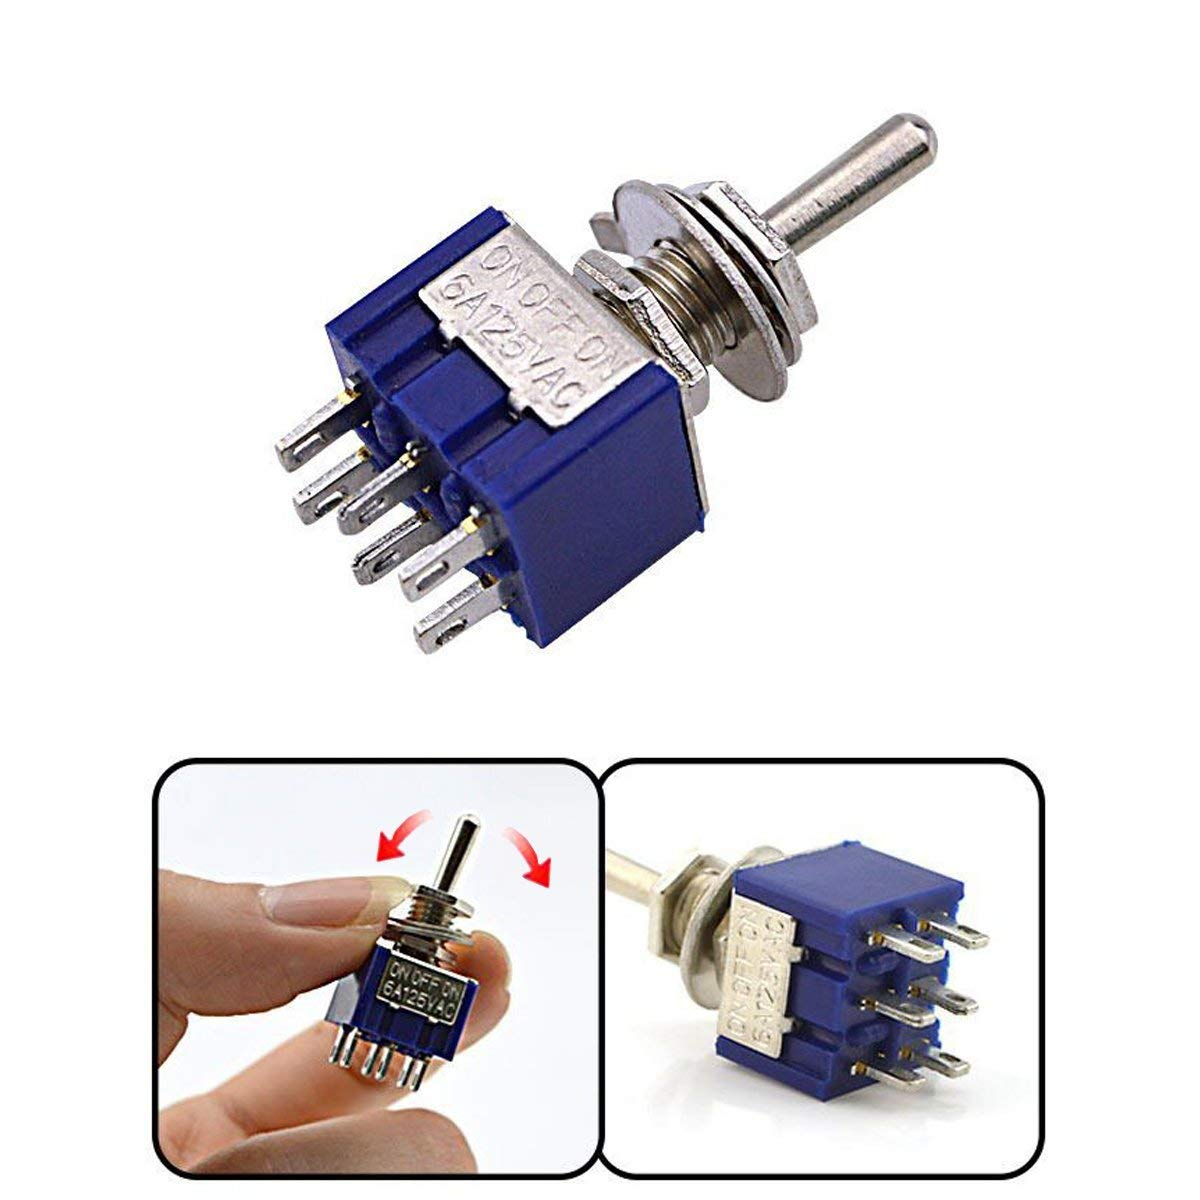 AC 125V 6A Amps ON/ON 6 Terminals 2 Position DPDT Toggle Switch MTS202